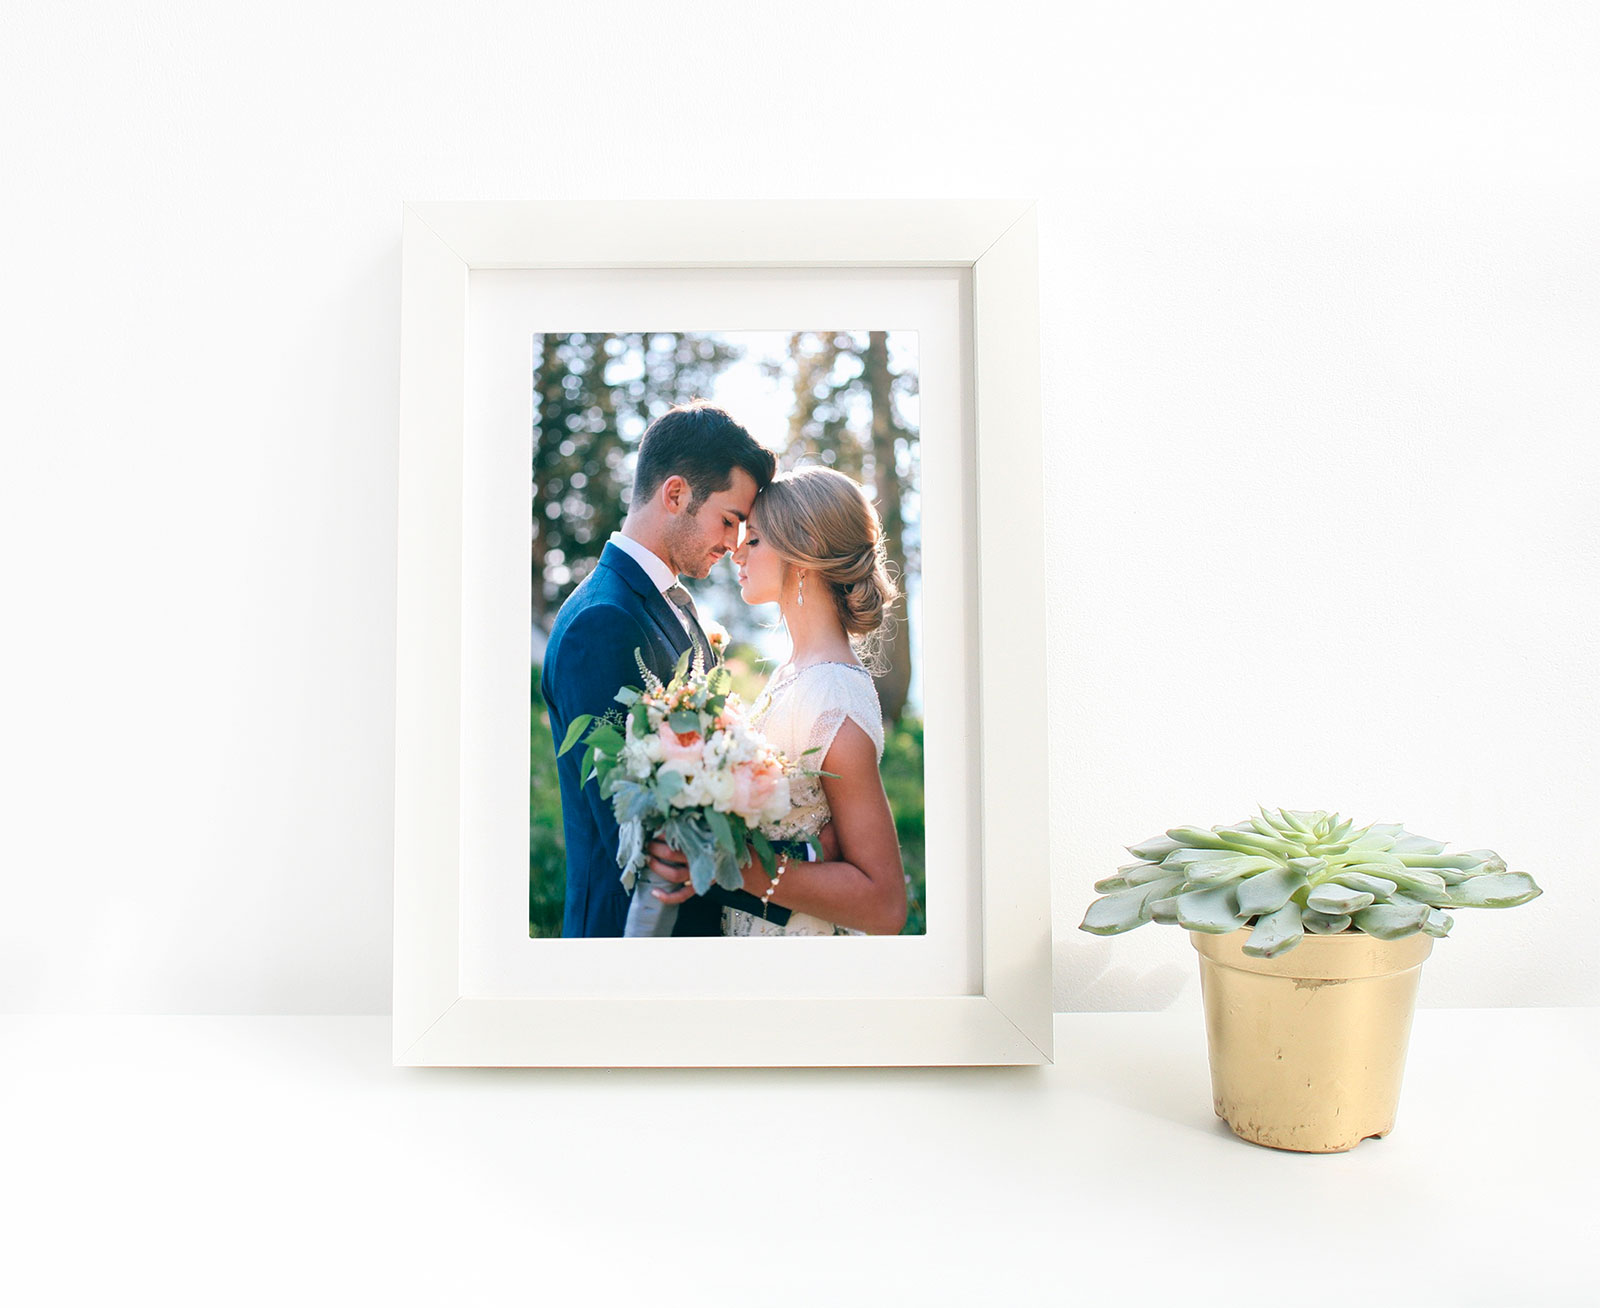 Free-Picture-Frame-Mockup-PSD-for-Wedding-Photos-&-Lettering-2